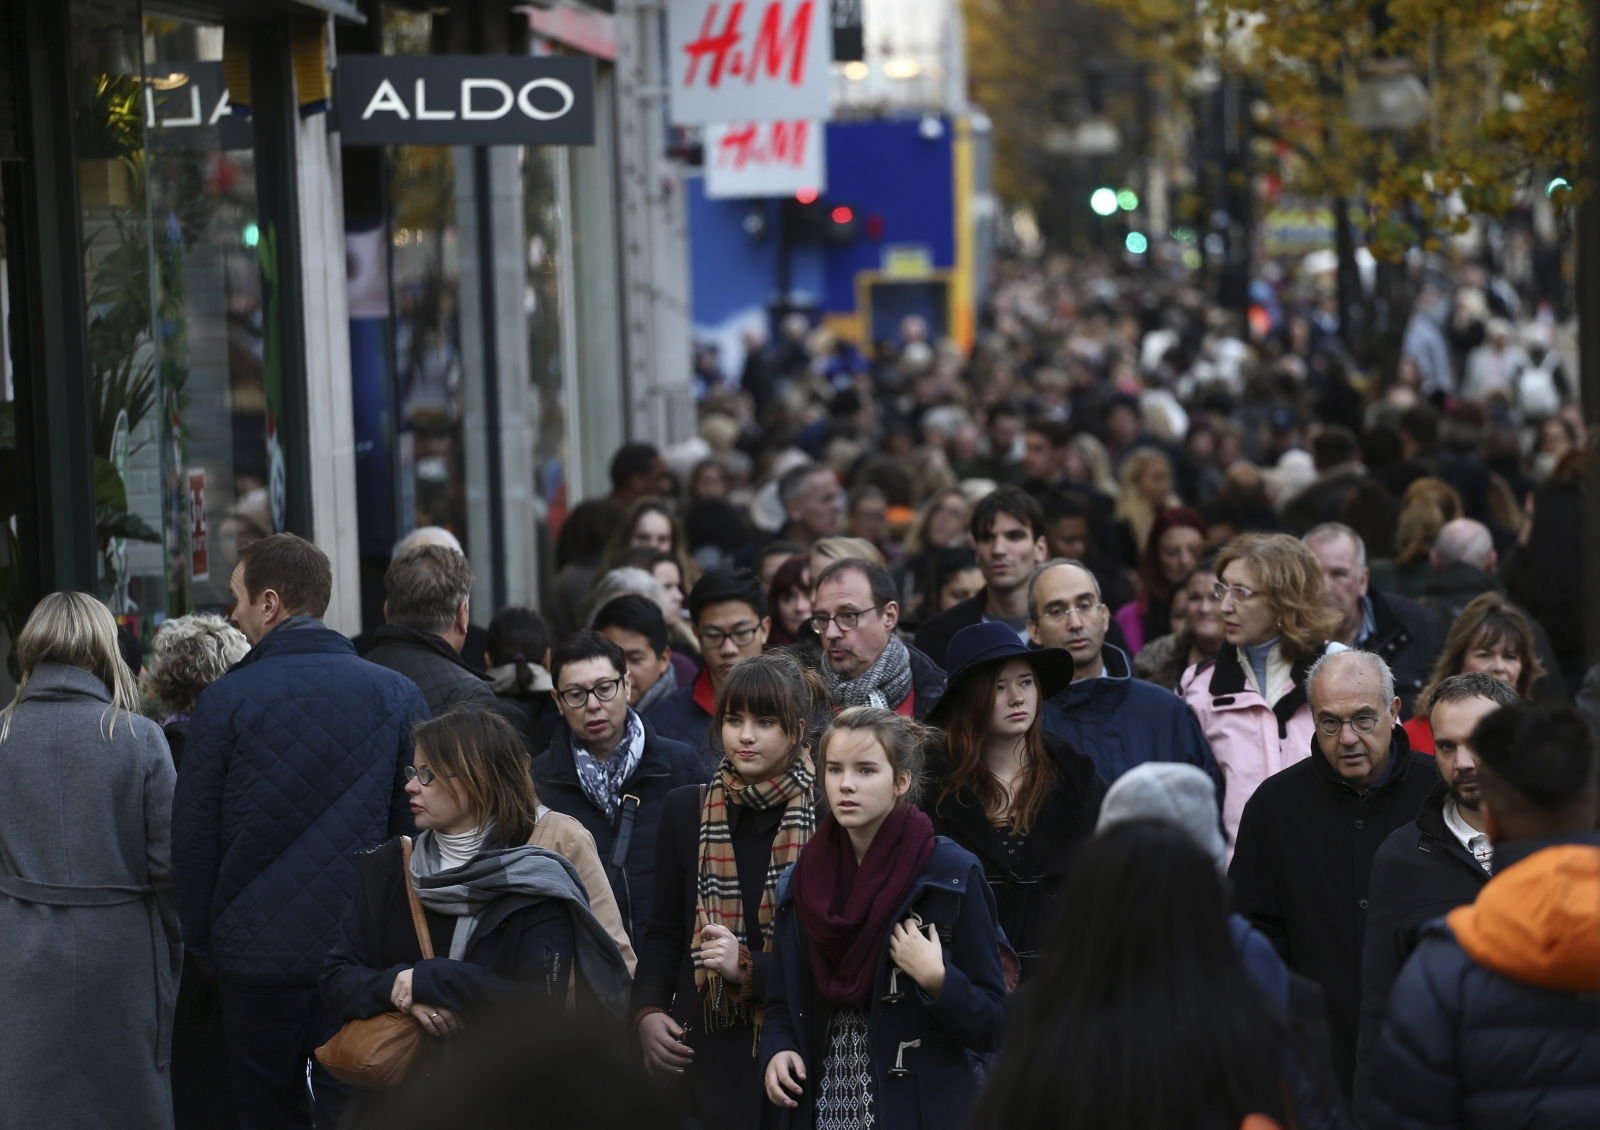 United Kingdom consumer spending falls for third consecutive month in November